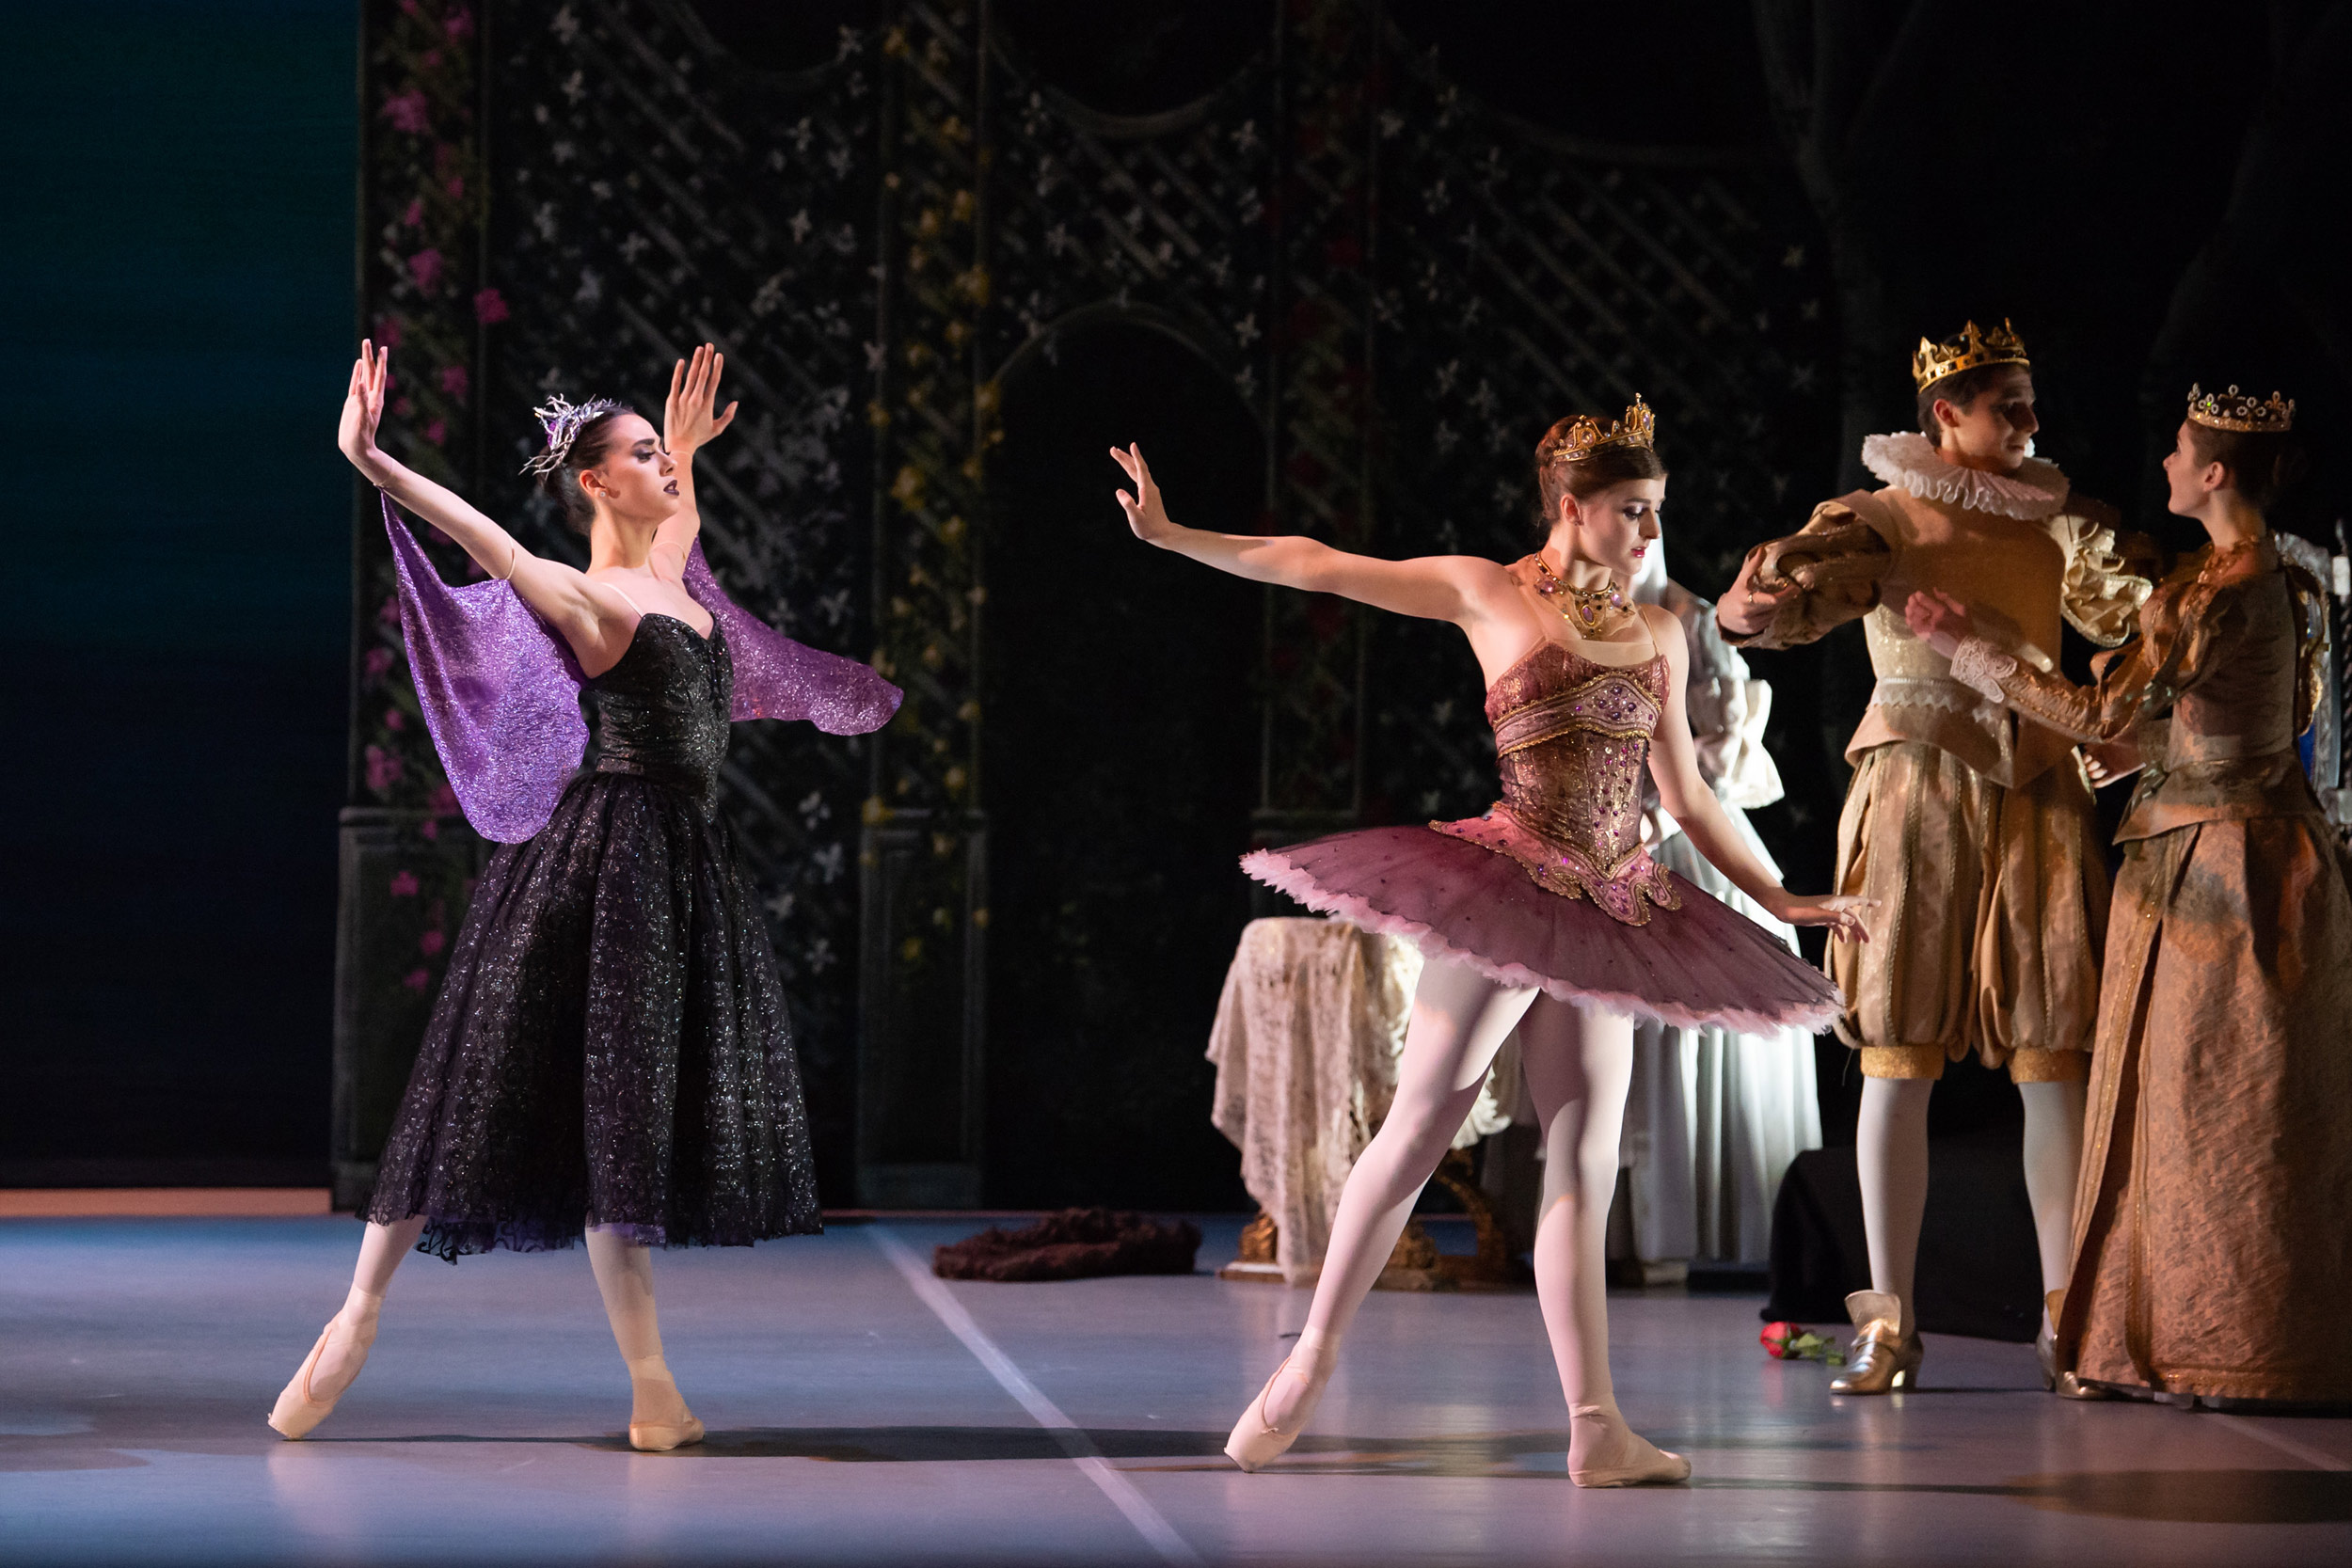 e649a6b09dd4 Phoebe Schembri on dancing in My First Ballet: Sleeping Beauty ...